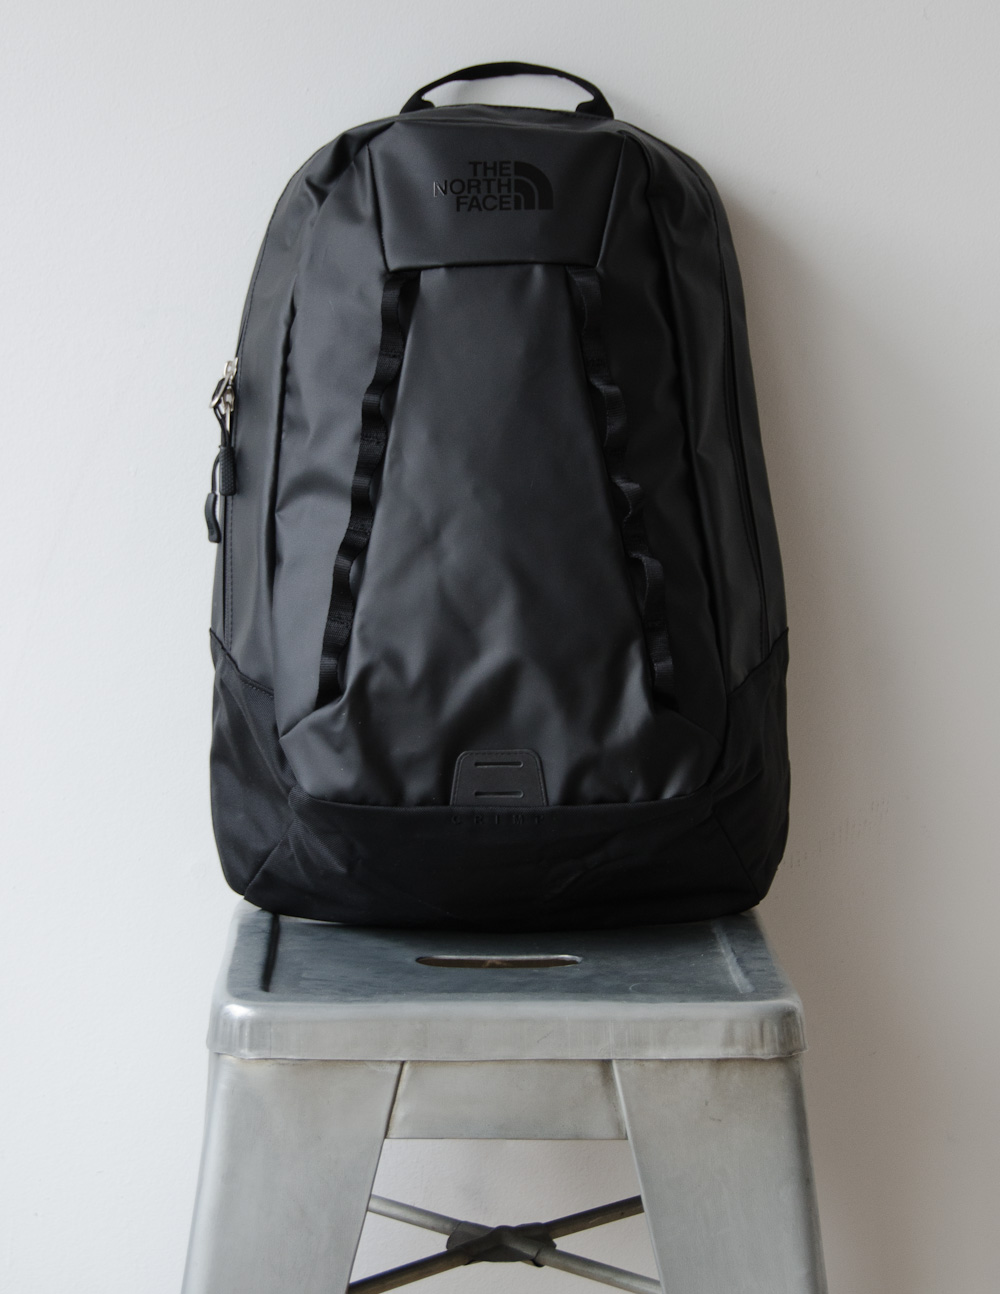 premium-picks-backpacks.jpg